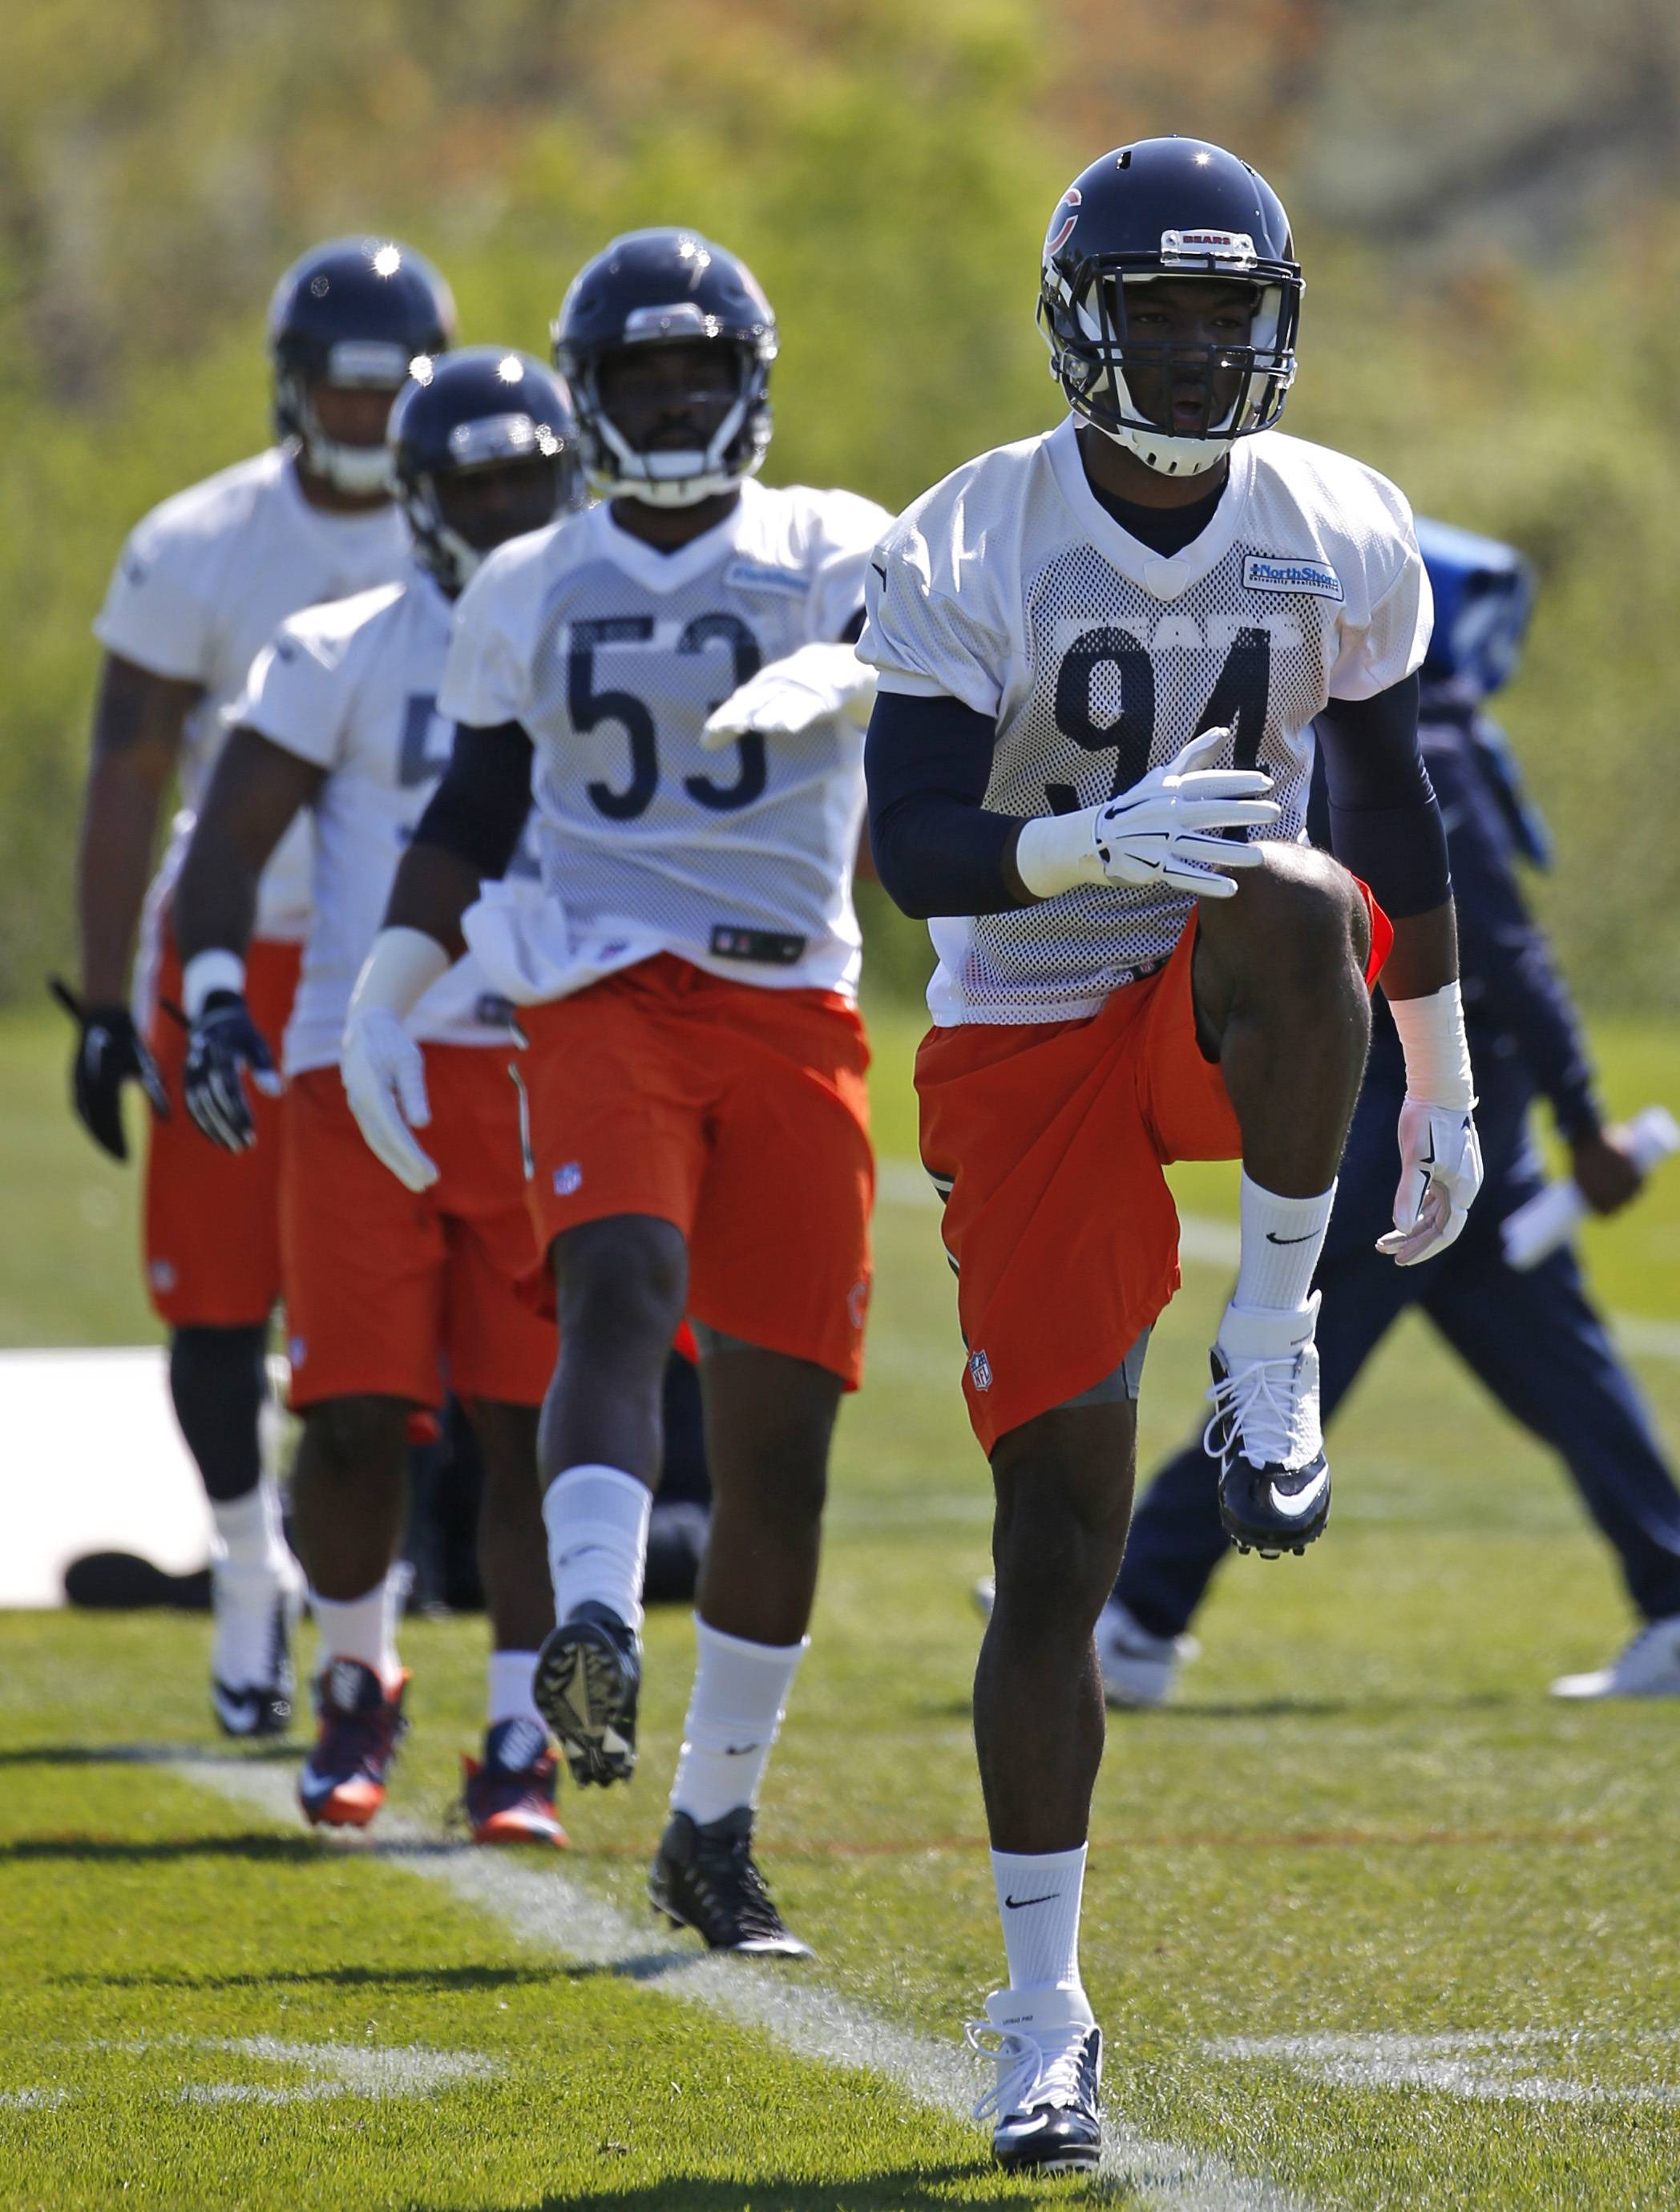 Chicago Bears rookie linebacker Leonard Floyd (94) warms up with teammates during the team's NFL rookie camp football practice at Halas Hall Friday, May 13, 2016, in Lake Forest, Ill.